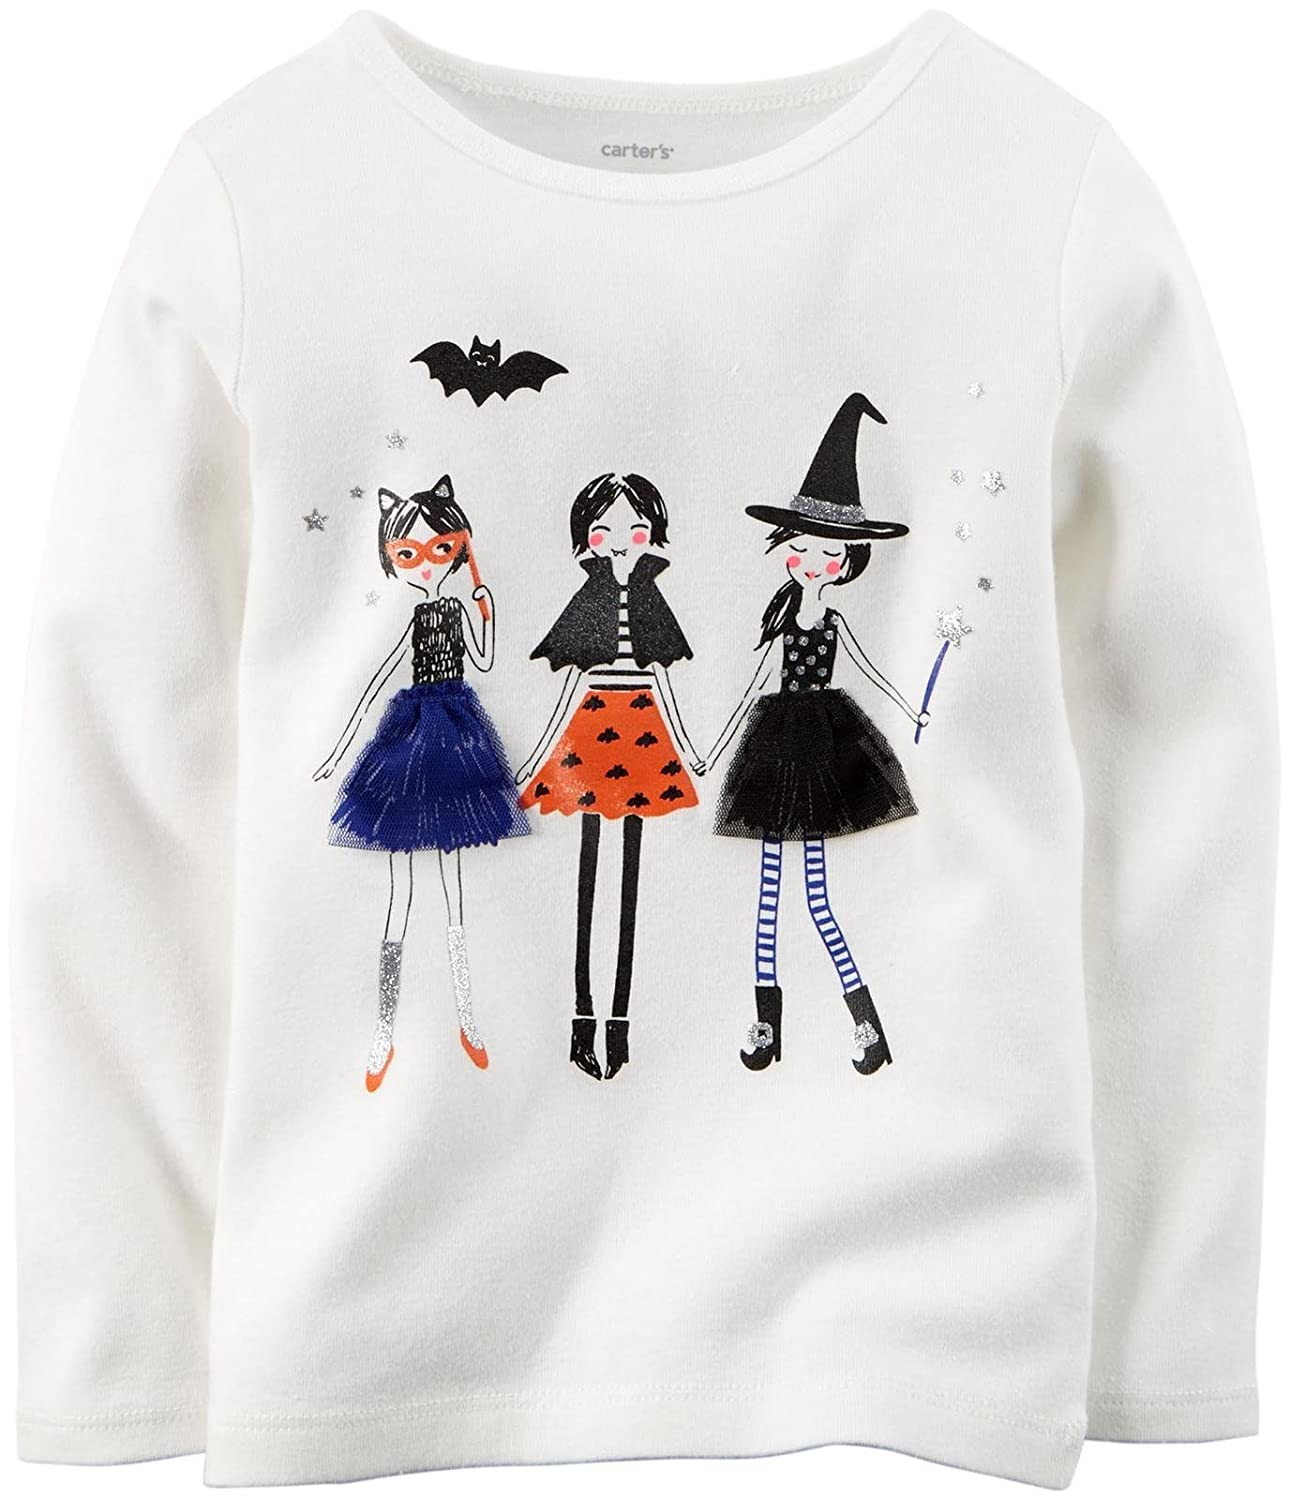 Baby Carters Baby Girls Halloween Graphic Tee 12 Months - 3 Girls